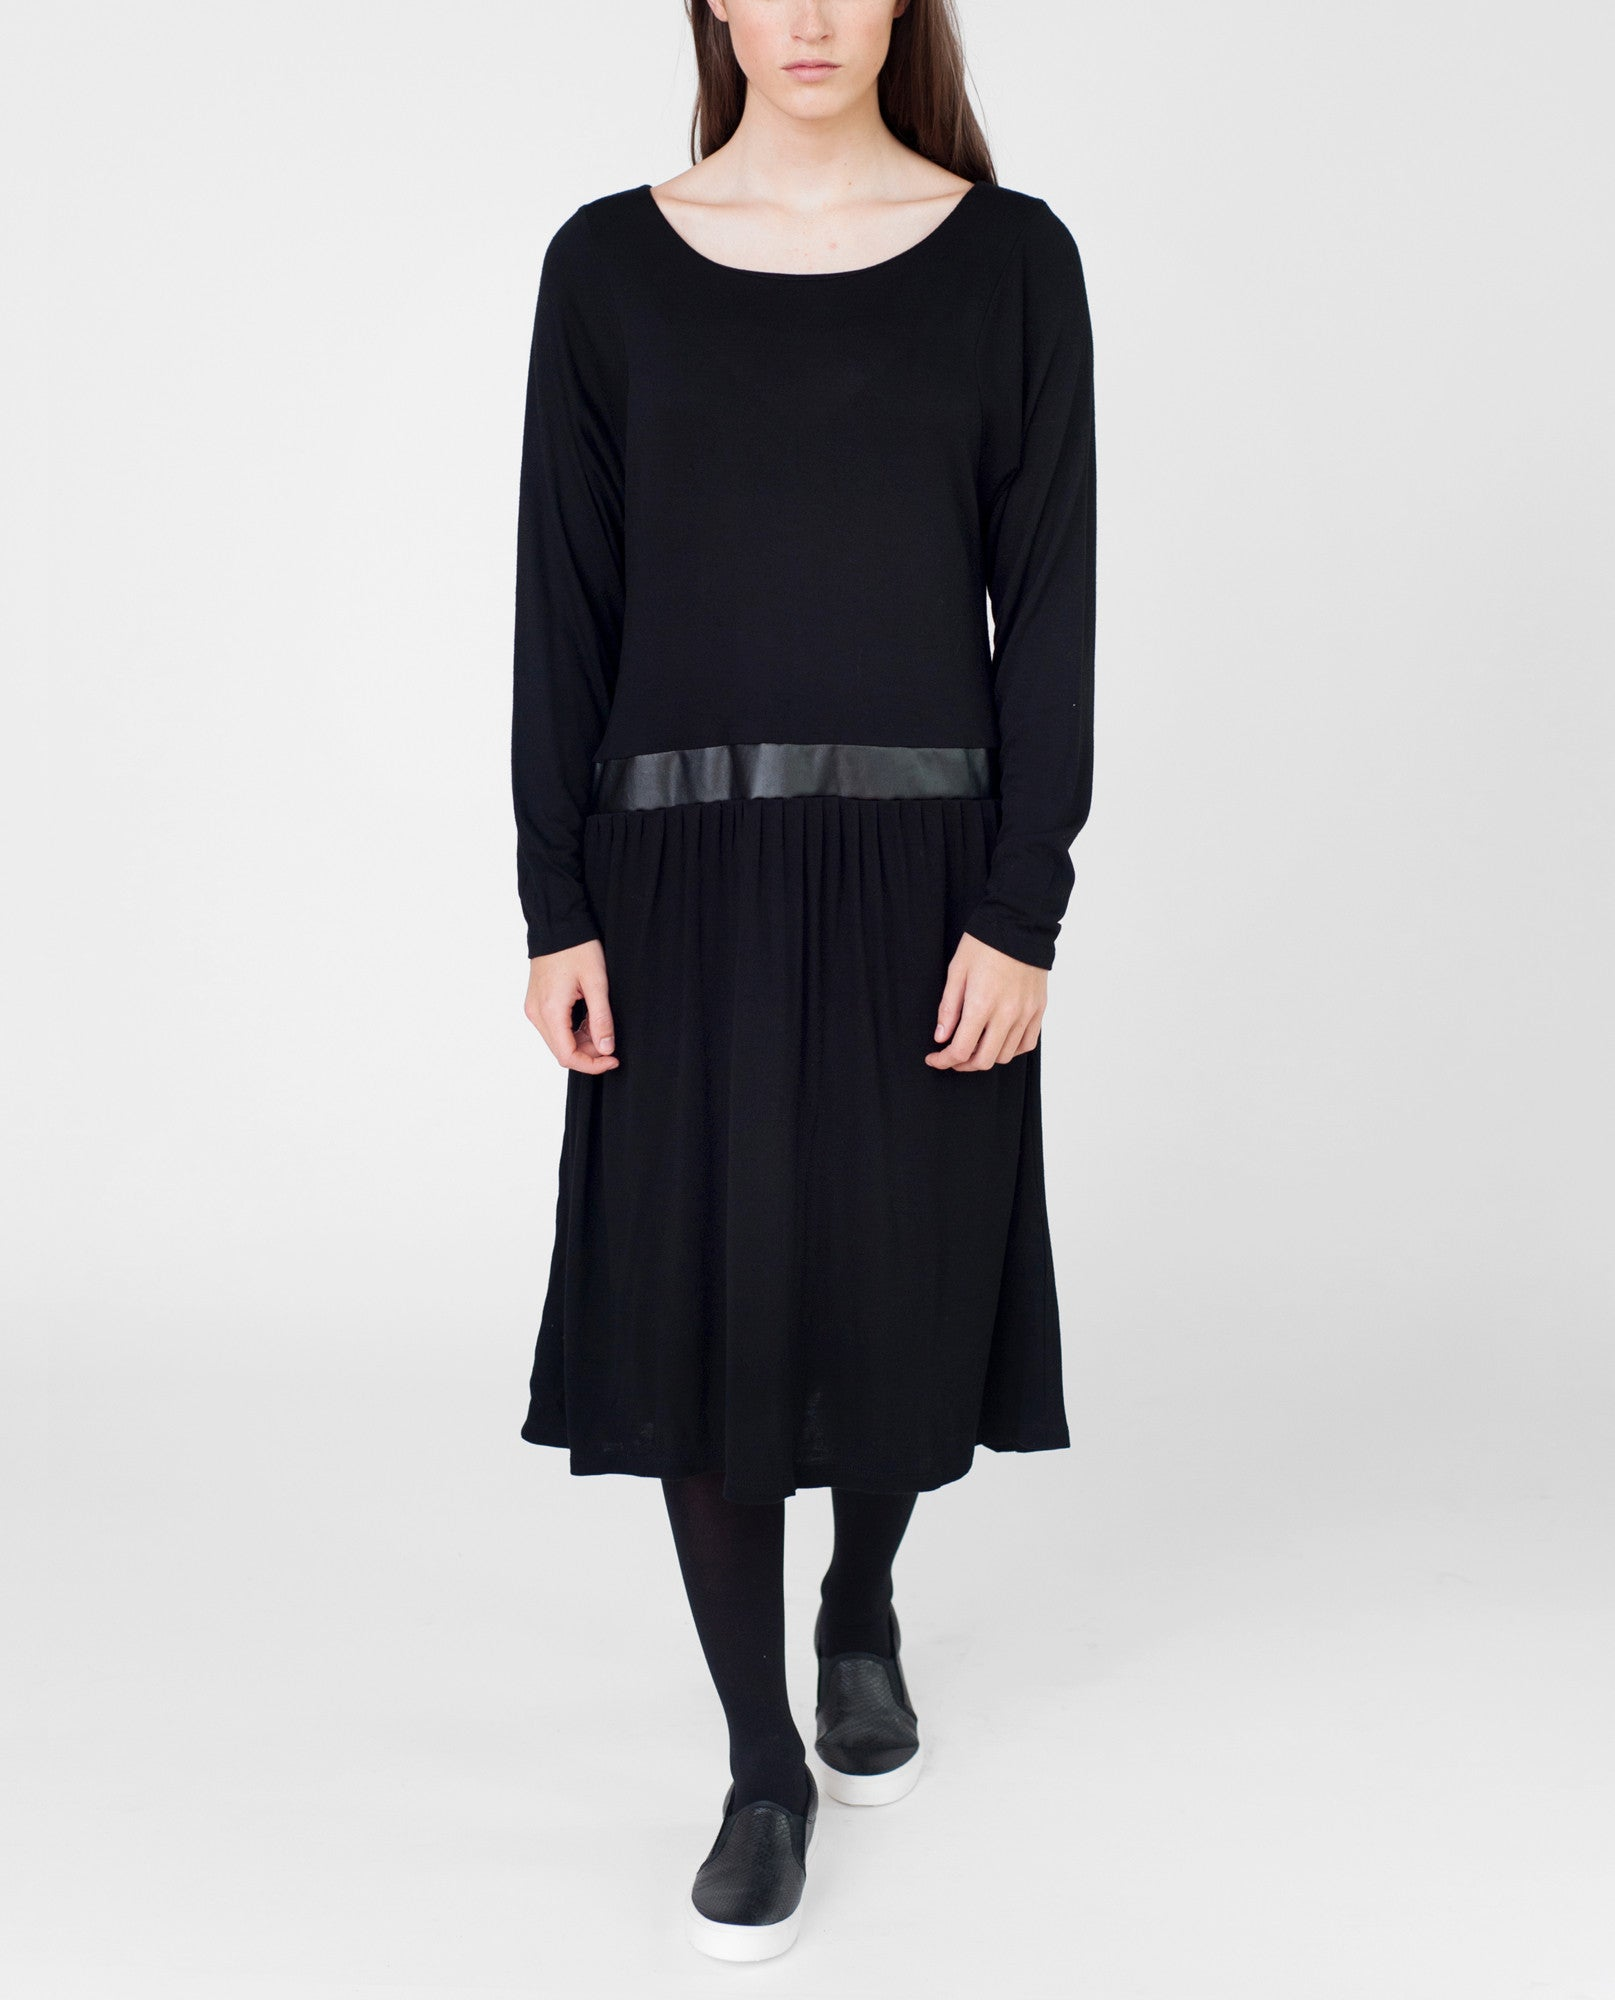 EMILY Bamboo Dropped Waist Dress from Beaumont Organic